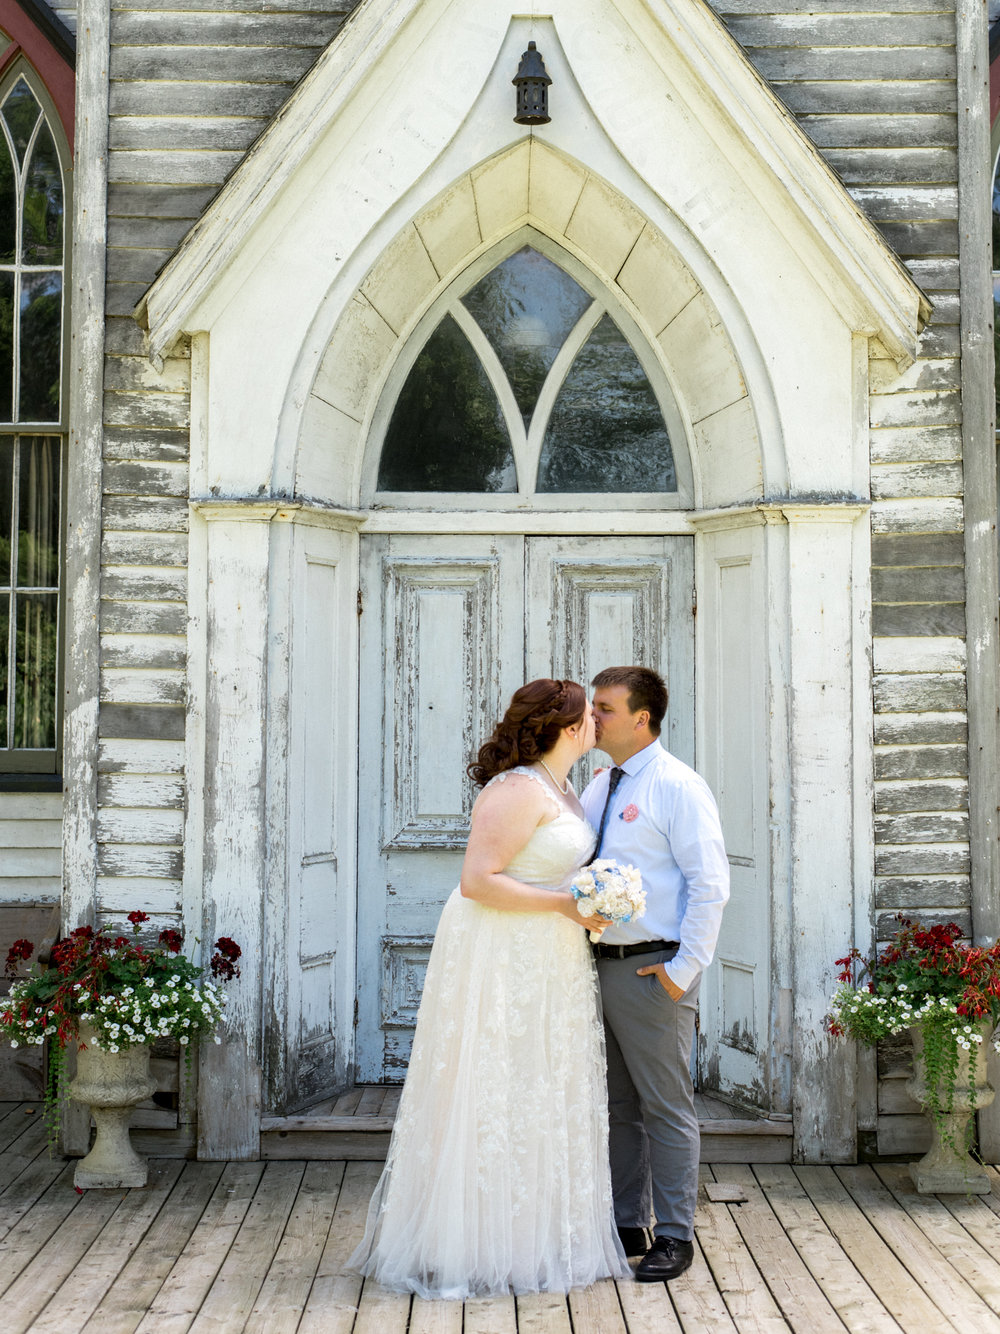 Chris & Carrie's Cranberry Creek Simcoe Port Dover Wedding Church Outdoor Summer Bright Hamilton Wedding Photography Niagara Aidan Hennebry Hush Hush Photography & Film-11.jpg